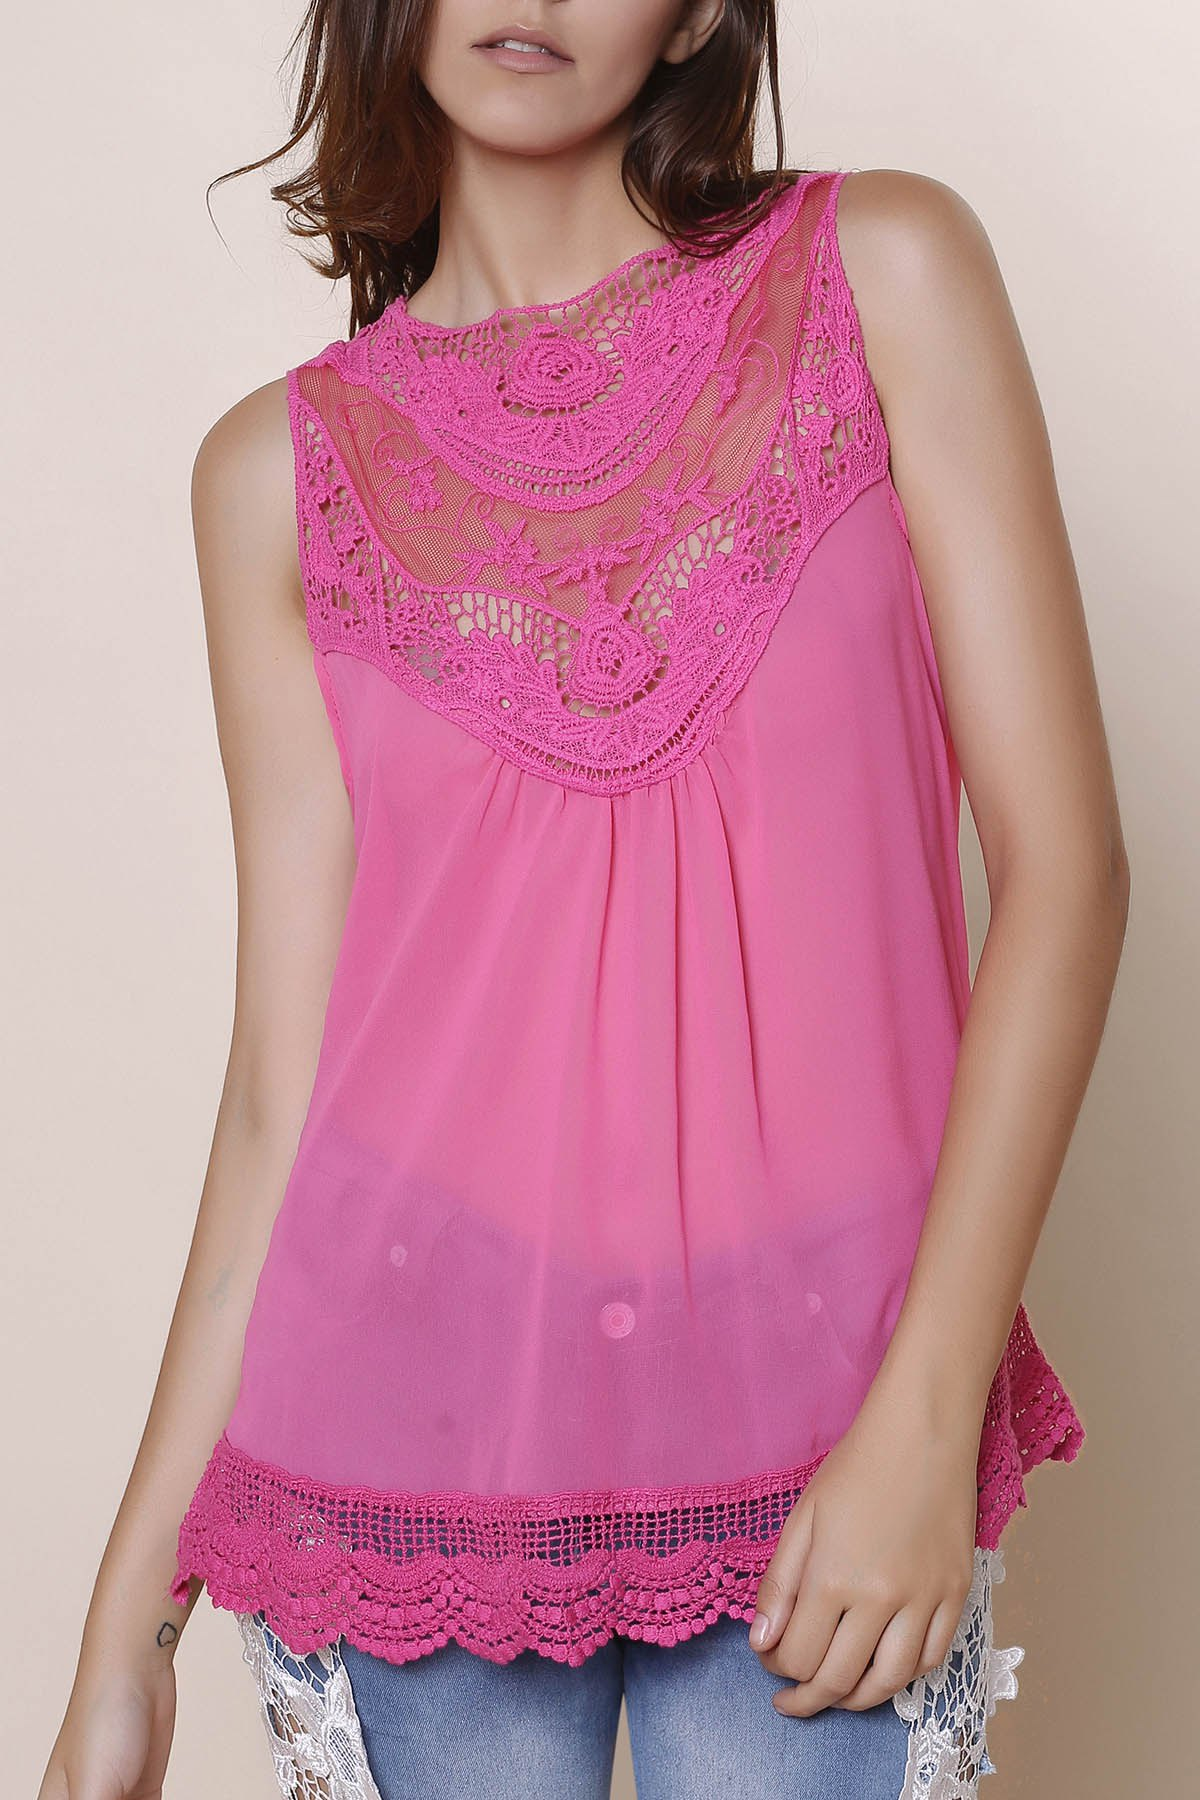 Sweet Solid Color Cut Out Lace Spliced Tank Top For Women - ROSE L